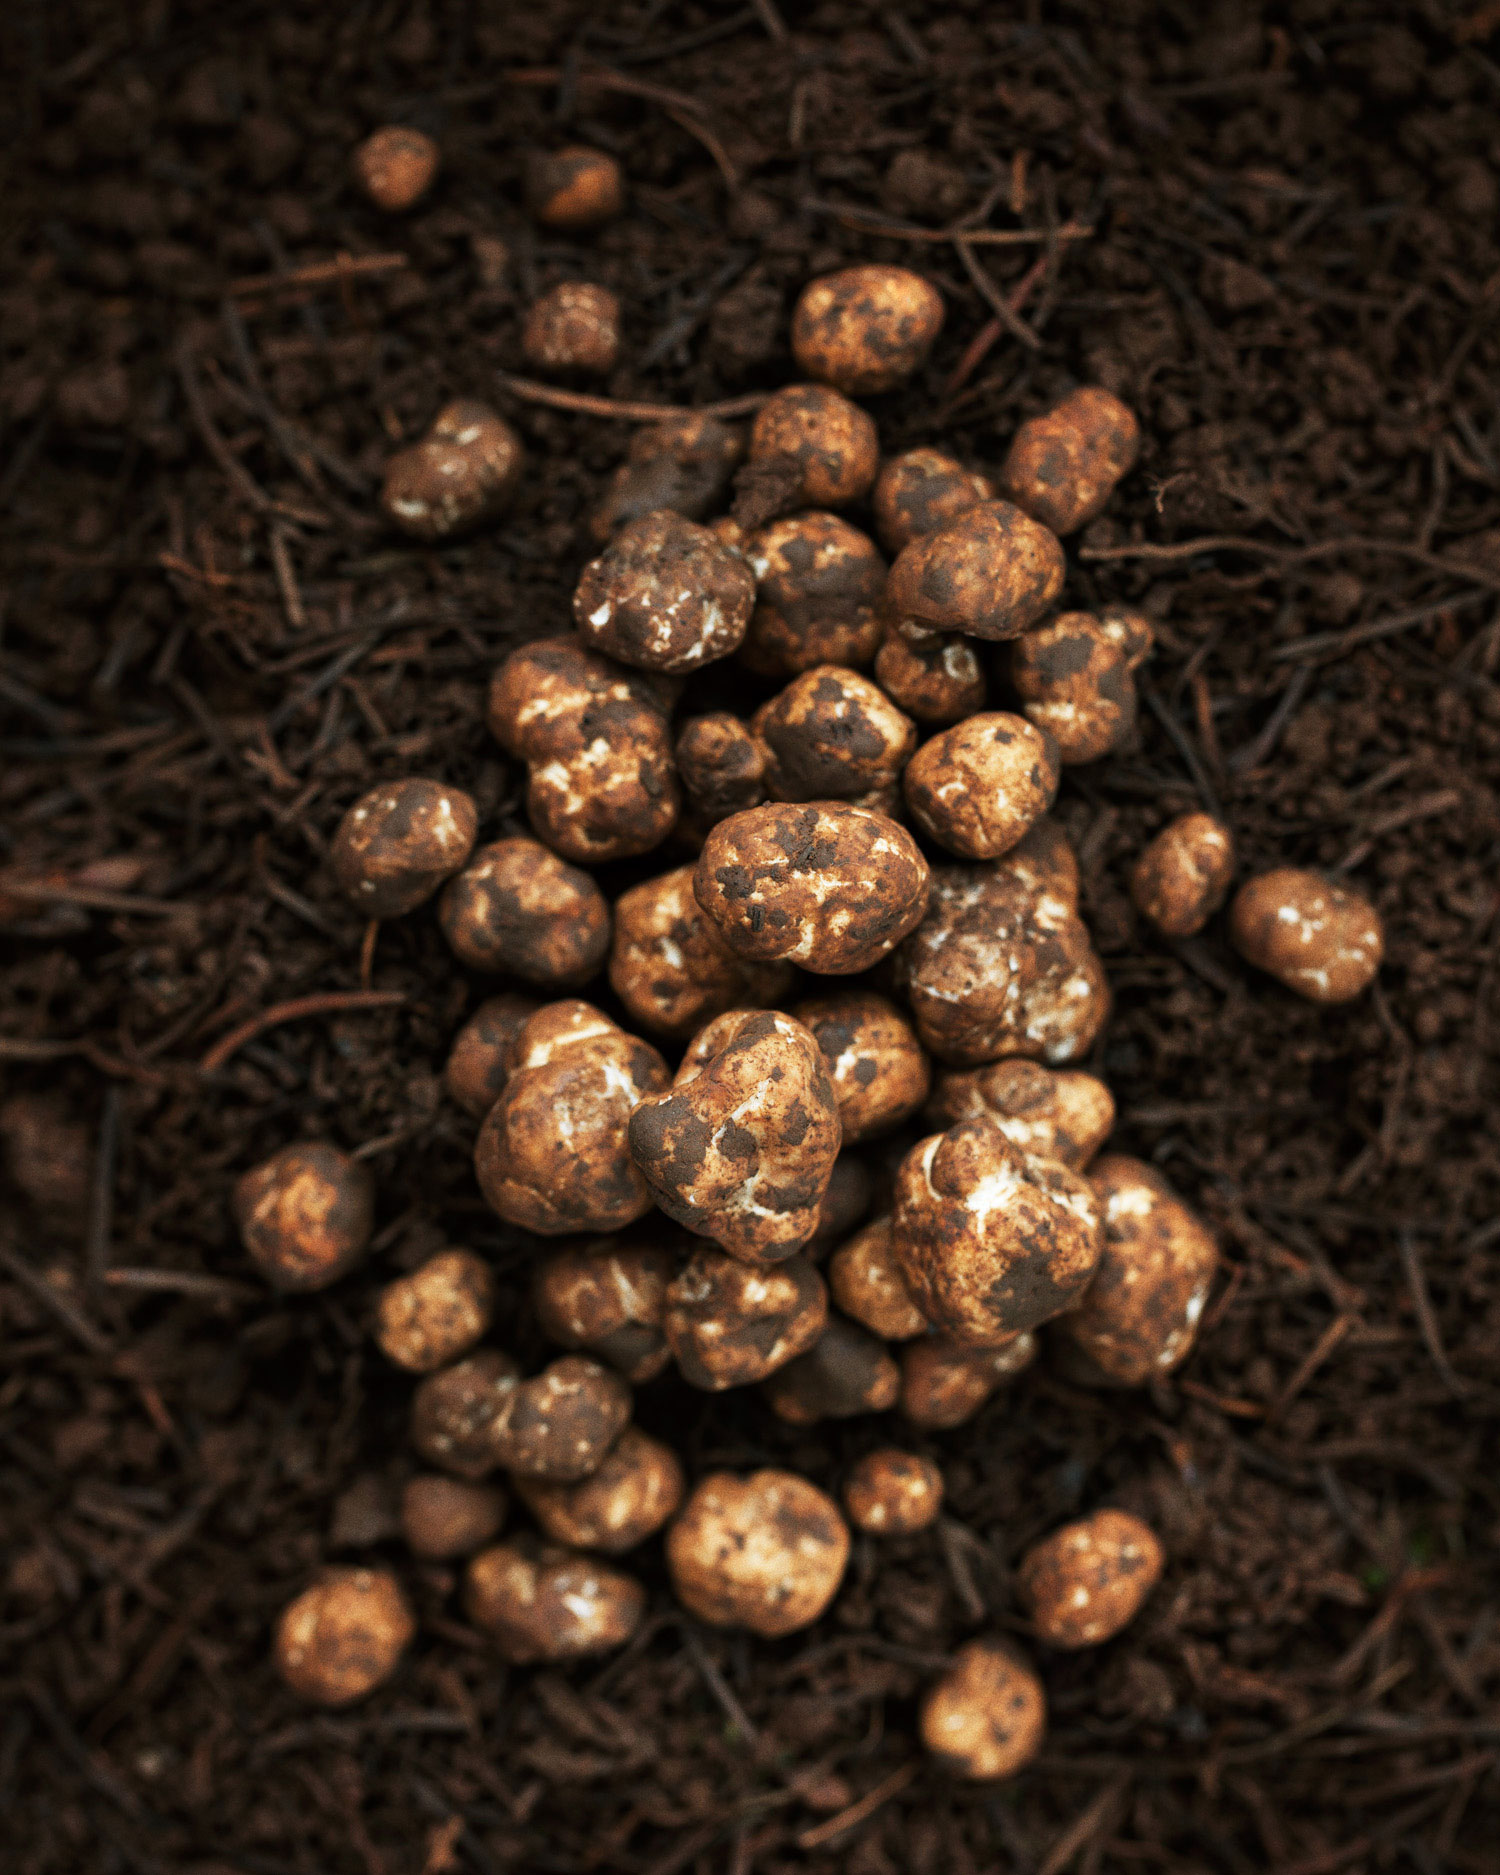 Oregon's Truffle Treasure